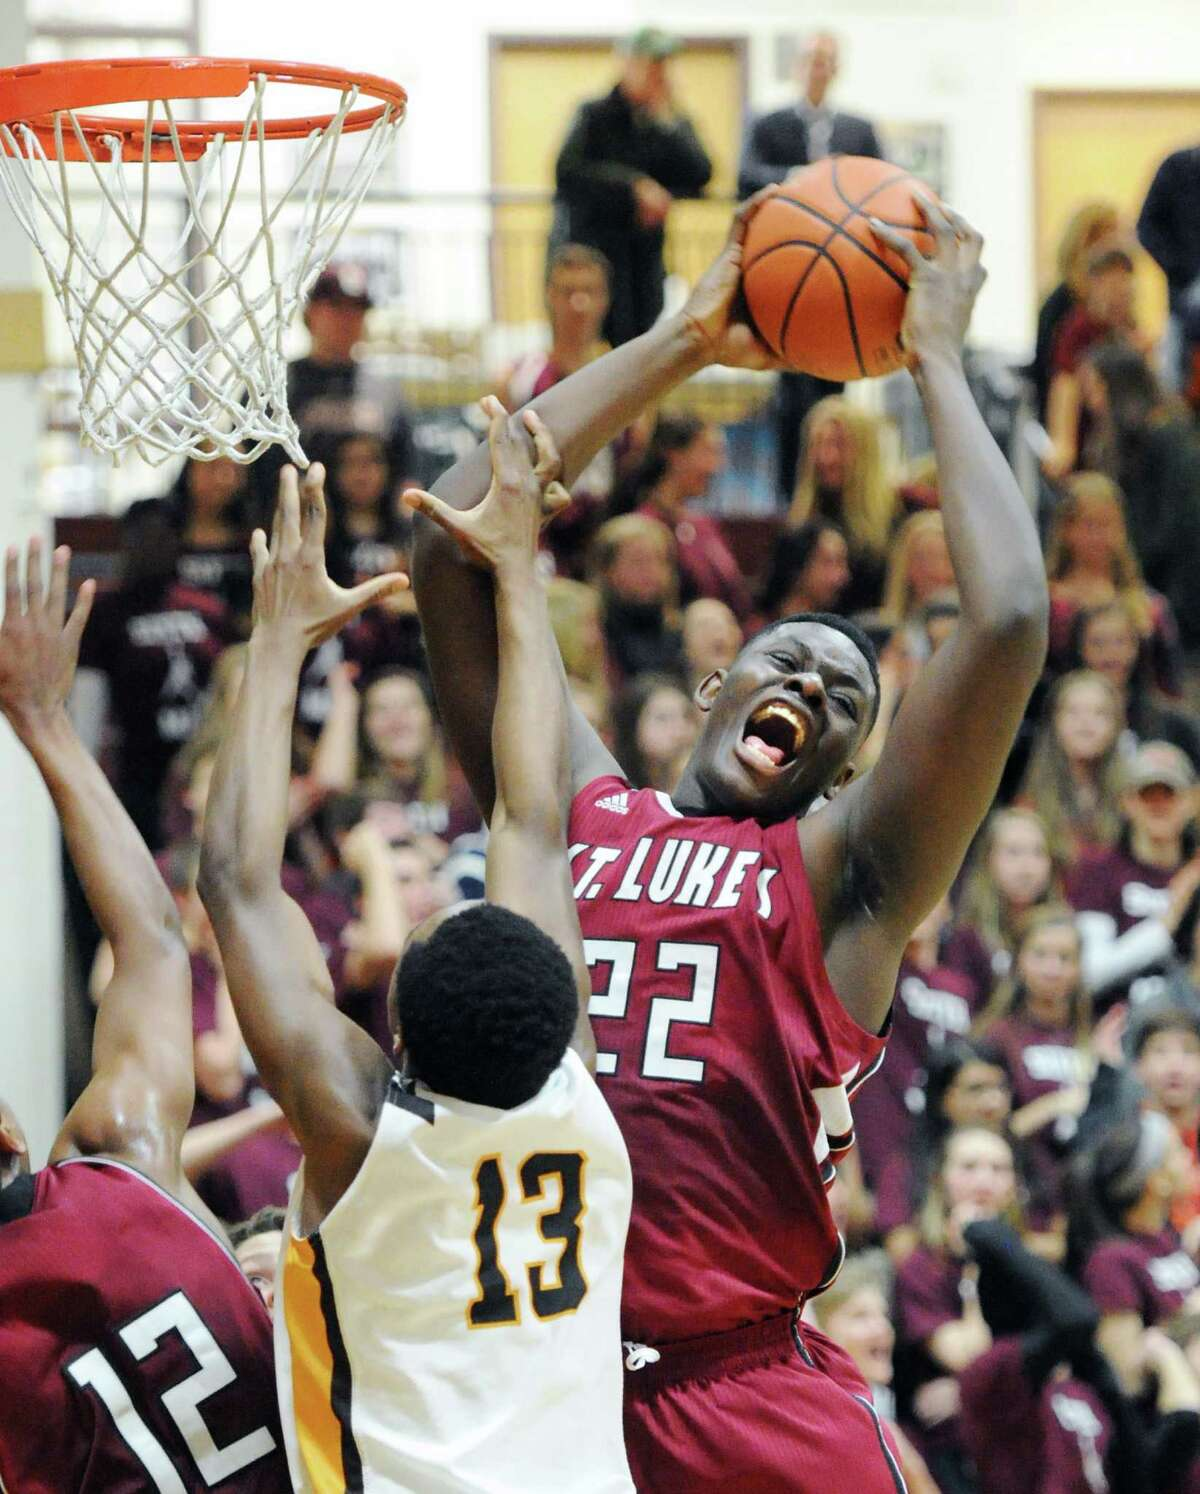 At right, Ami Lakoju (# 22) of St. Luke's grabs a defensive rebound over Nacho Nwana (#13) of Brunswick's during the boys high school basketball game between St. Luke's School and Brunswick School at St. Luke's in New Canaan, Conn., Friday night, Jan.10, 2014.